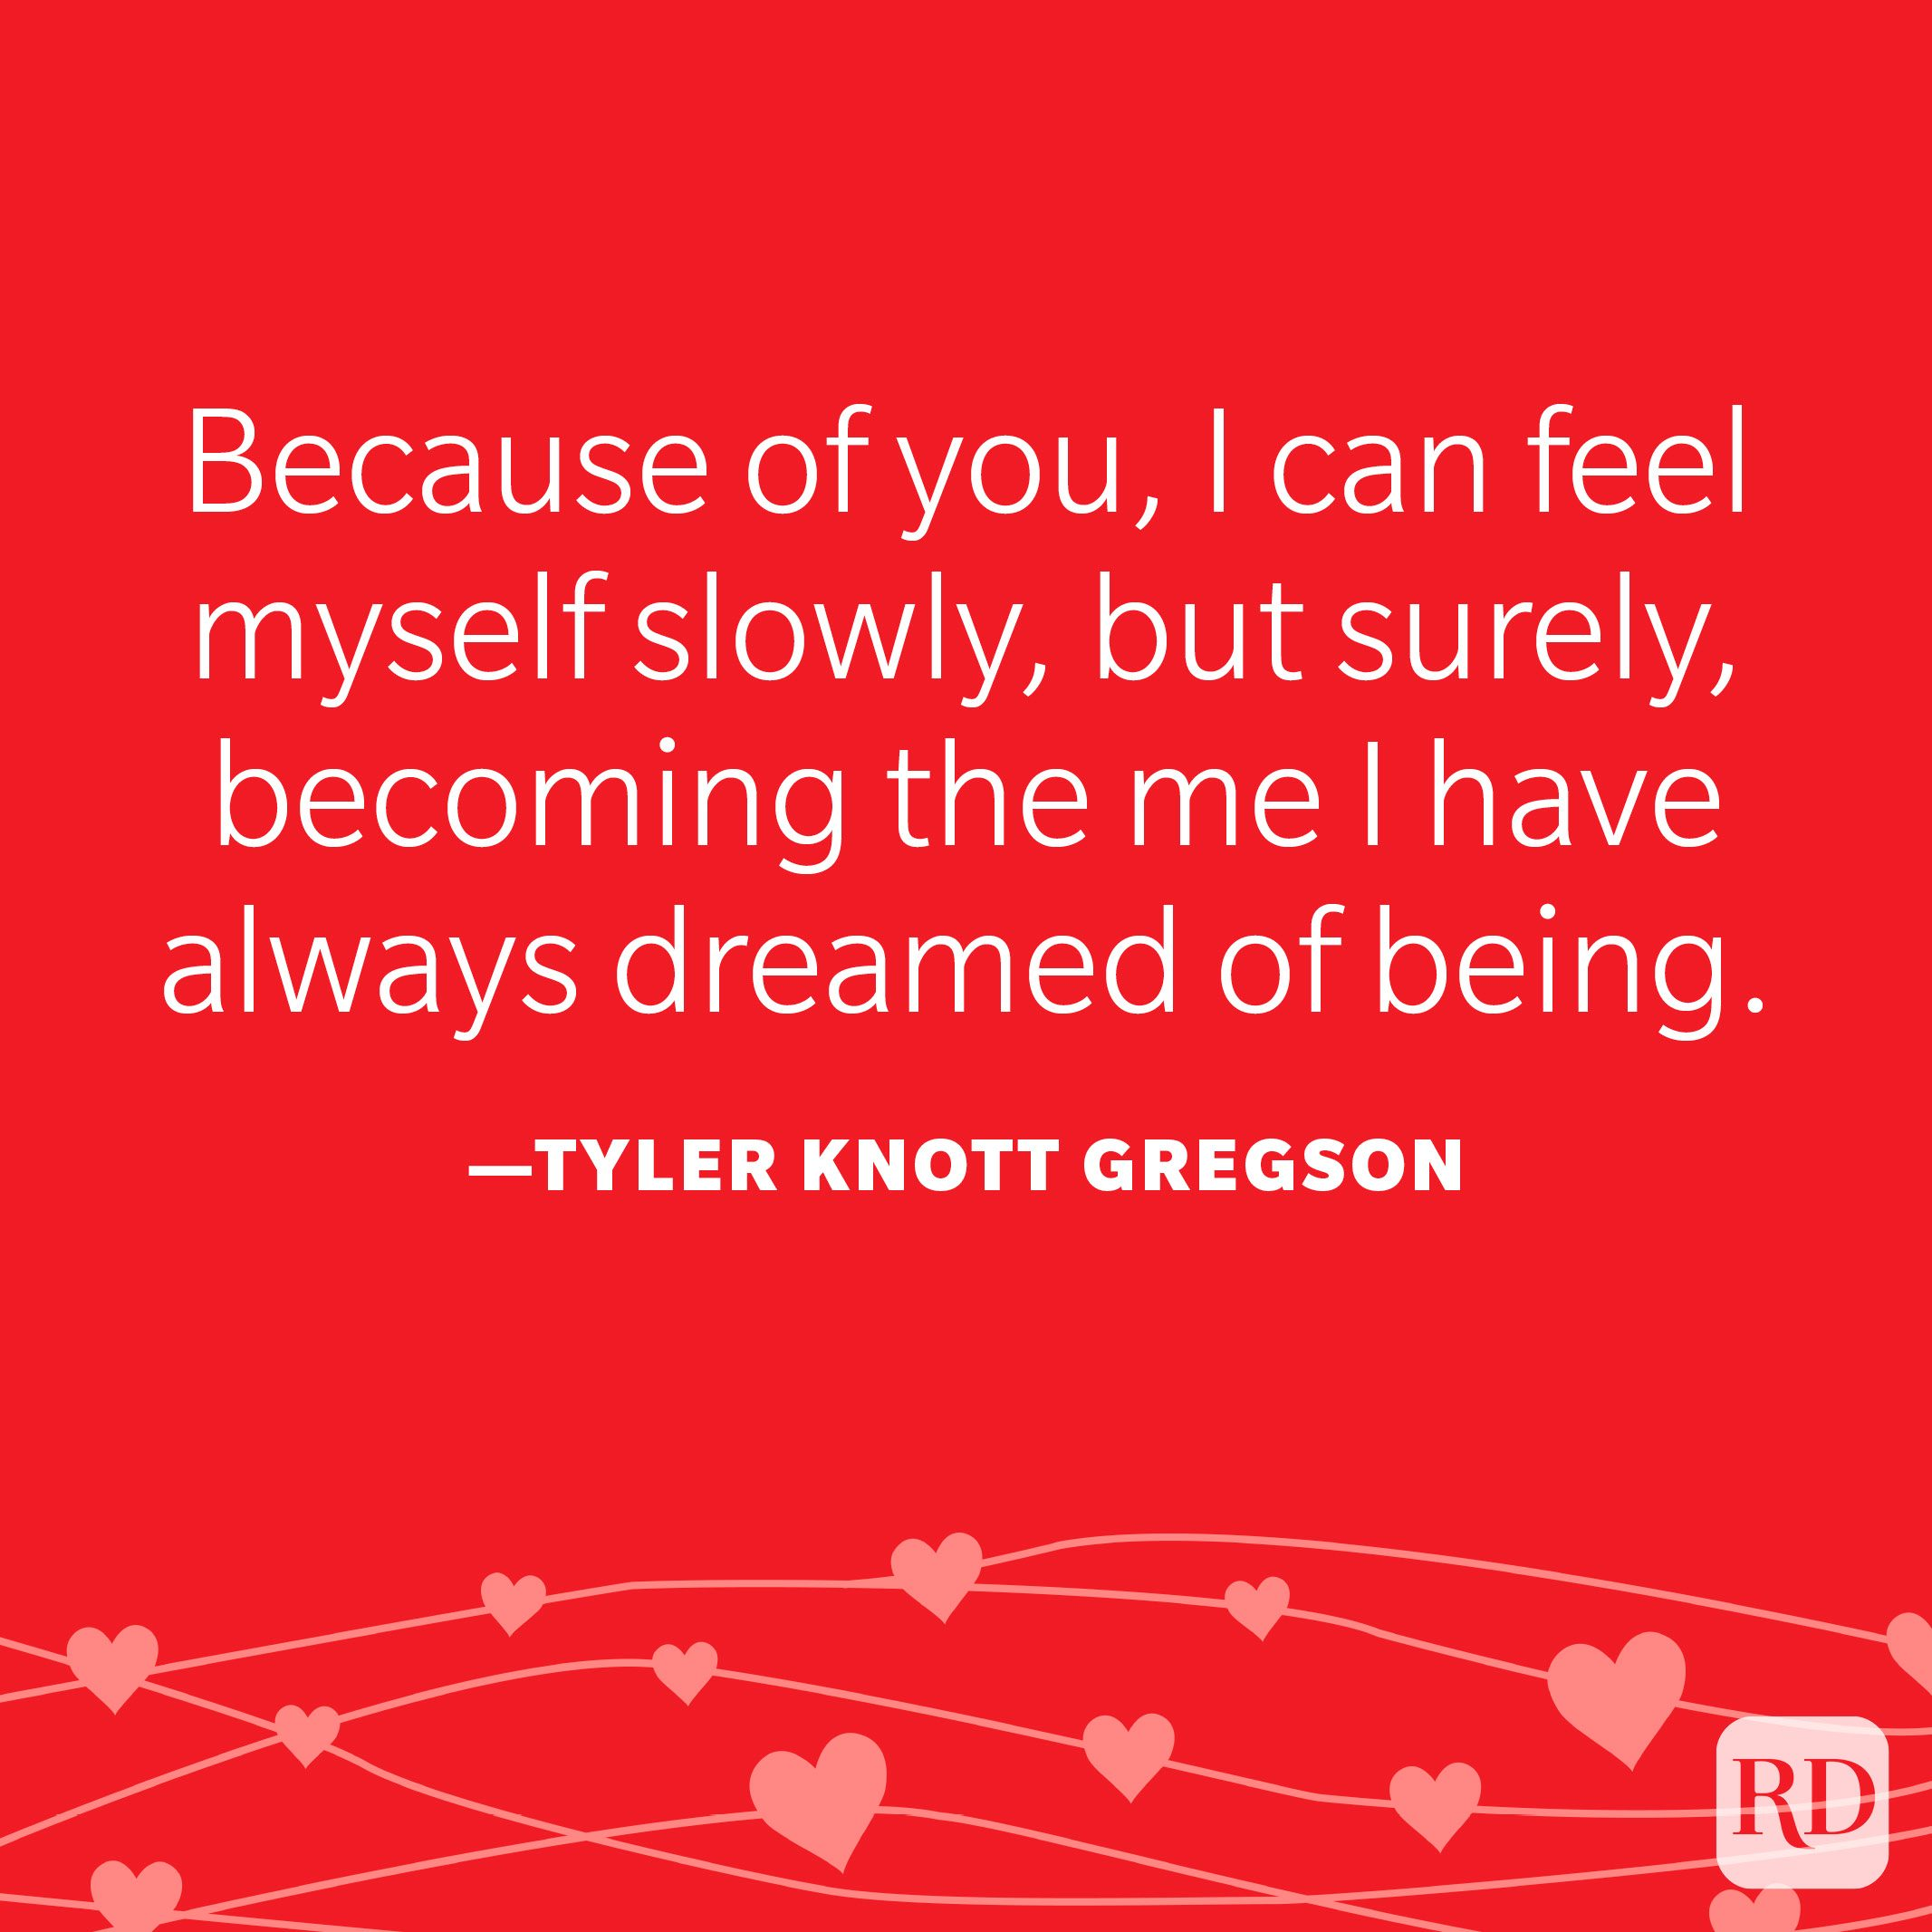 """""""Because of you, I can feel myself slowly, but surely, becoming the me I have always dreamed of being."""" —Tyler Knott Gregson"""